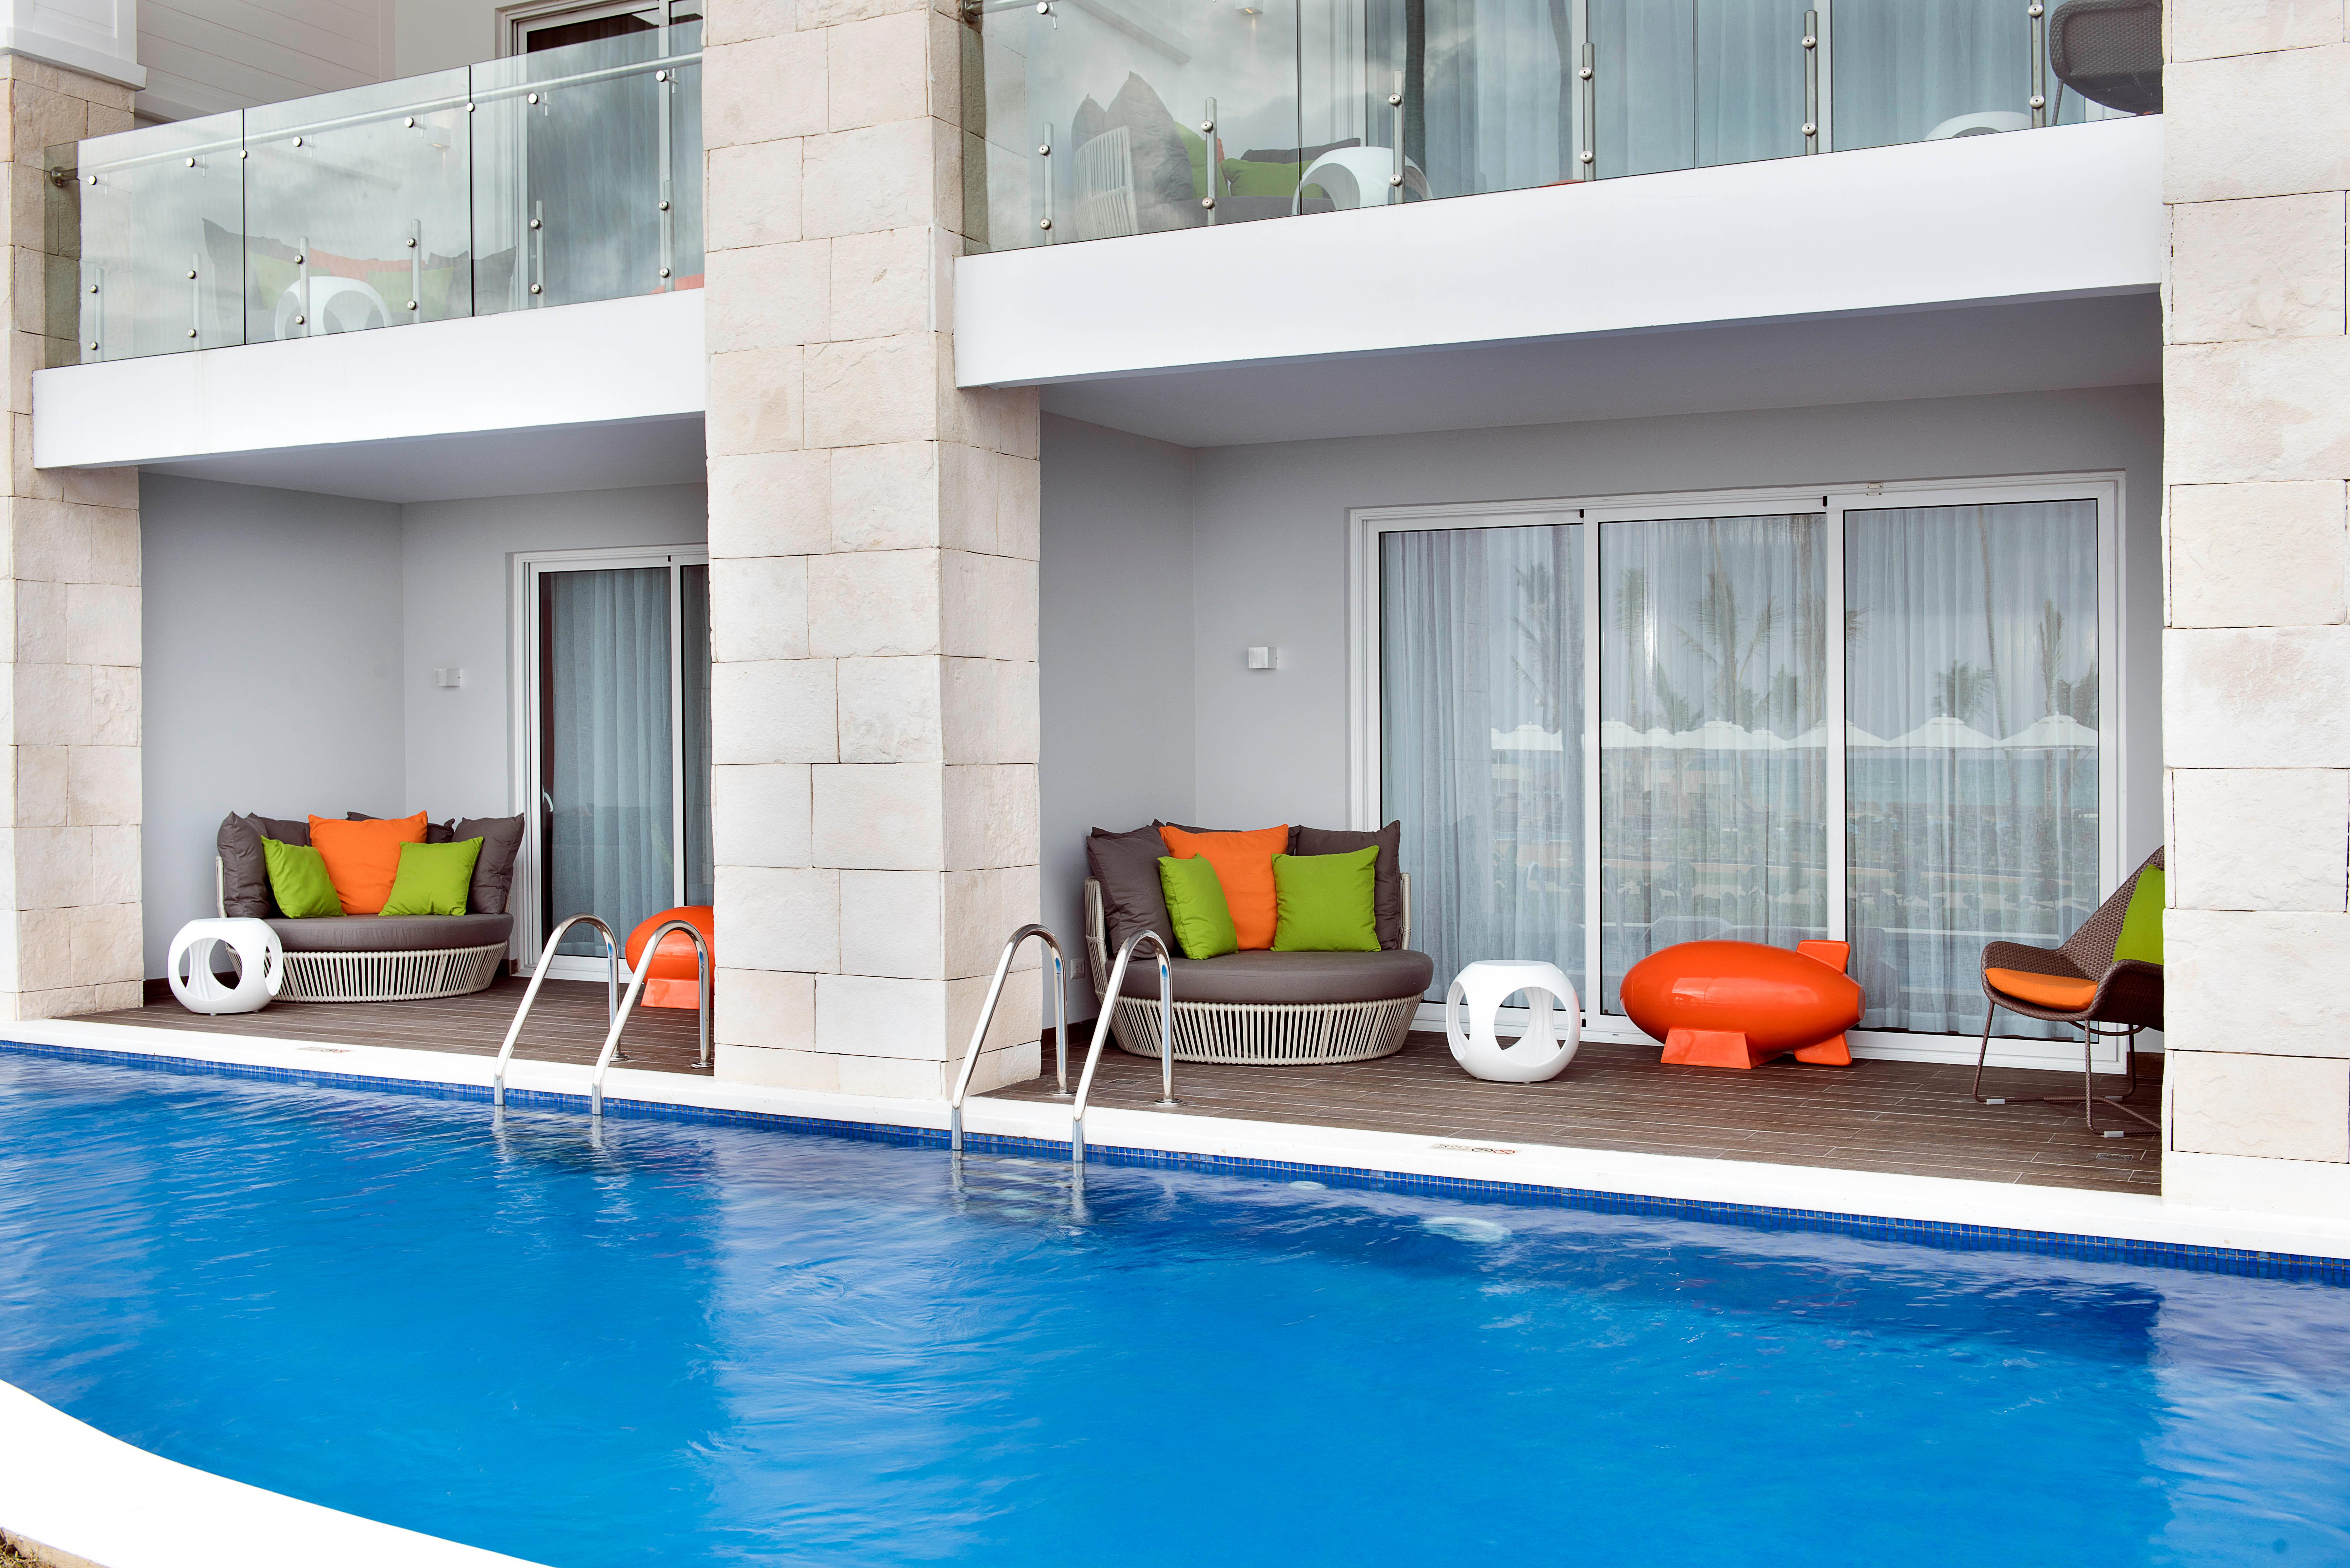 Cancun an all suites resort 2017 review family vacation critic - Nickelodeon Hotels Resorts Punta Cana Uvero Alto 2018 Review Family Vacation Critic